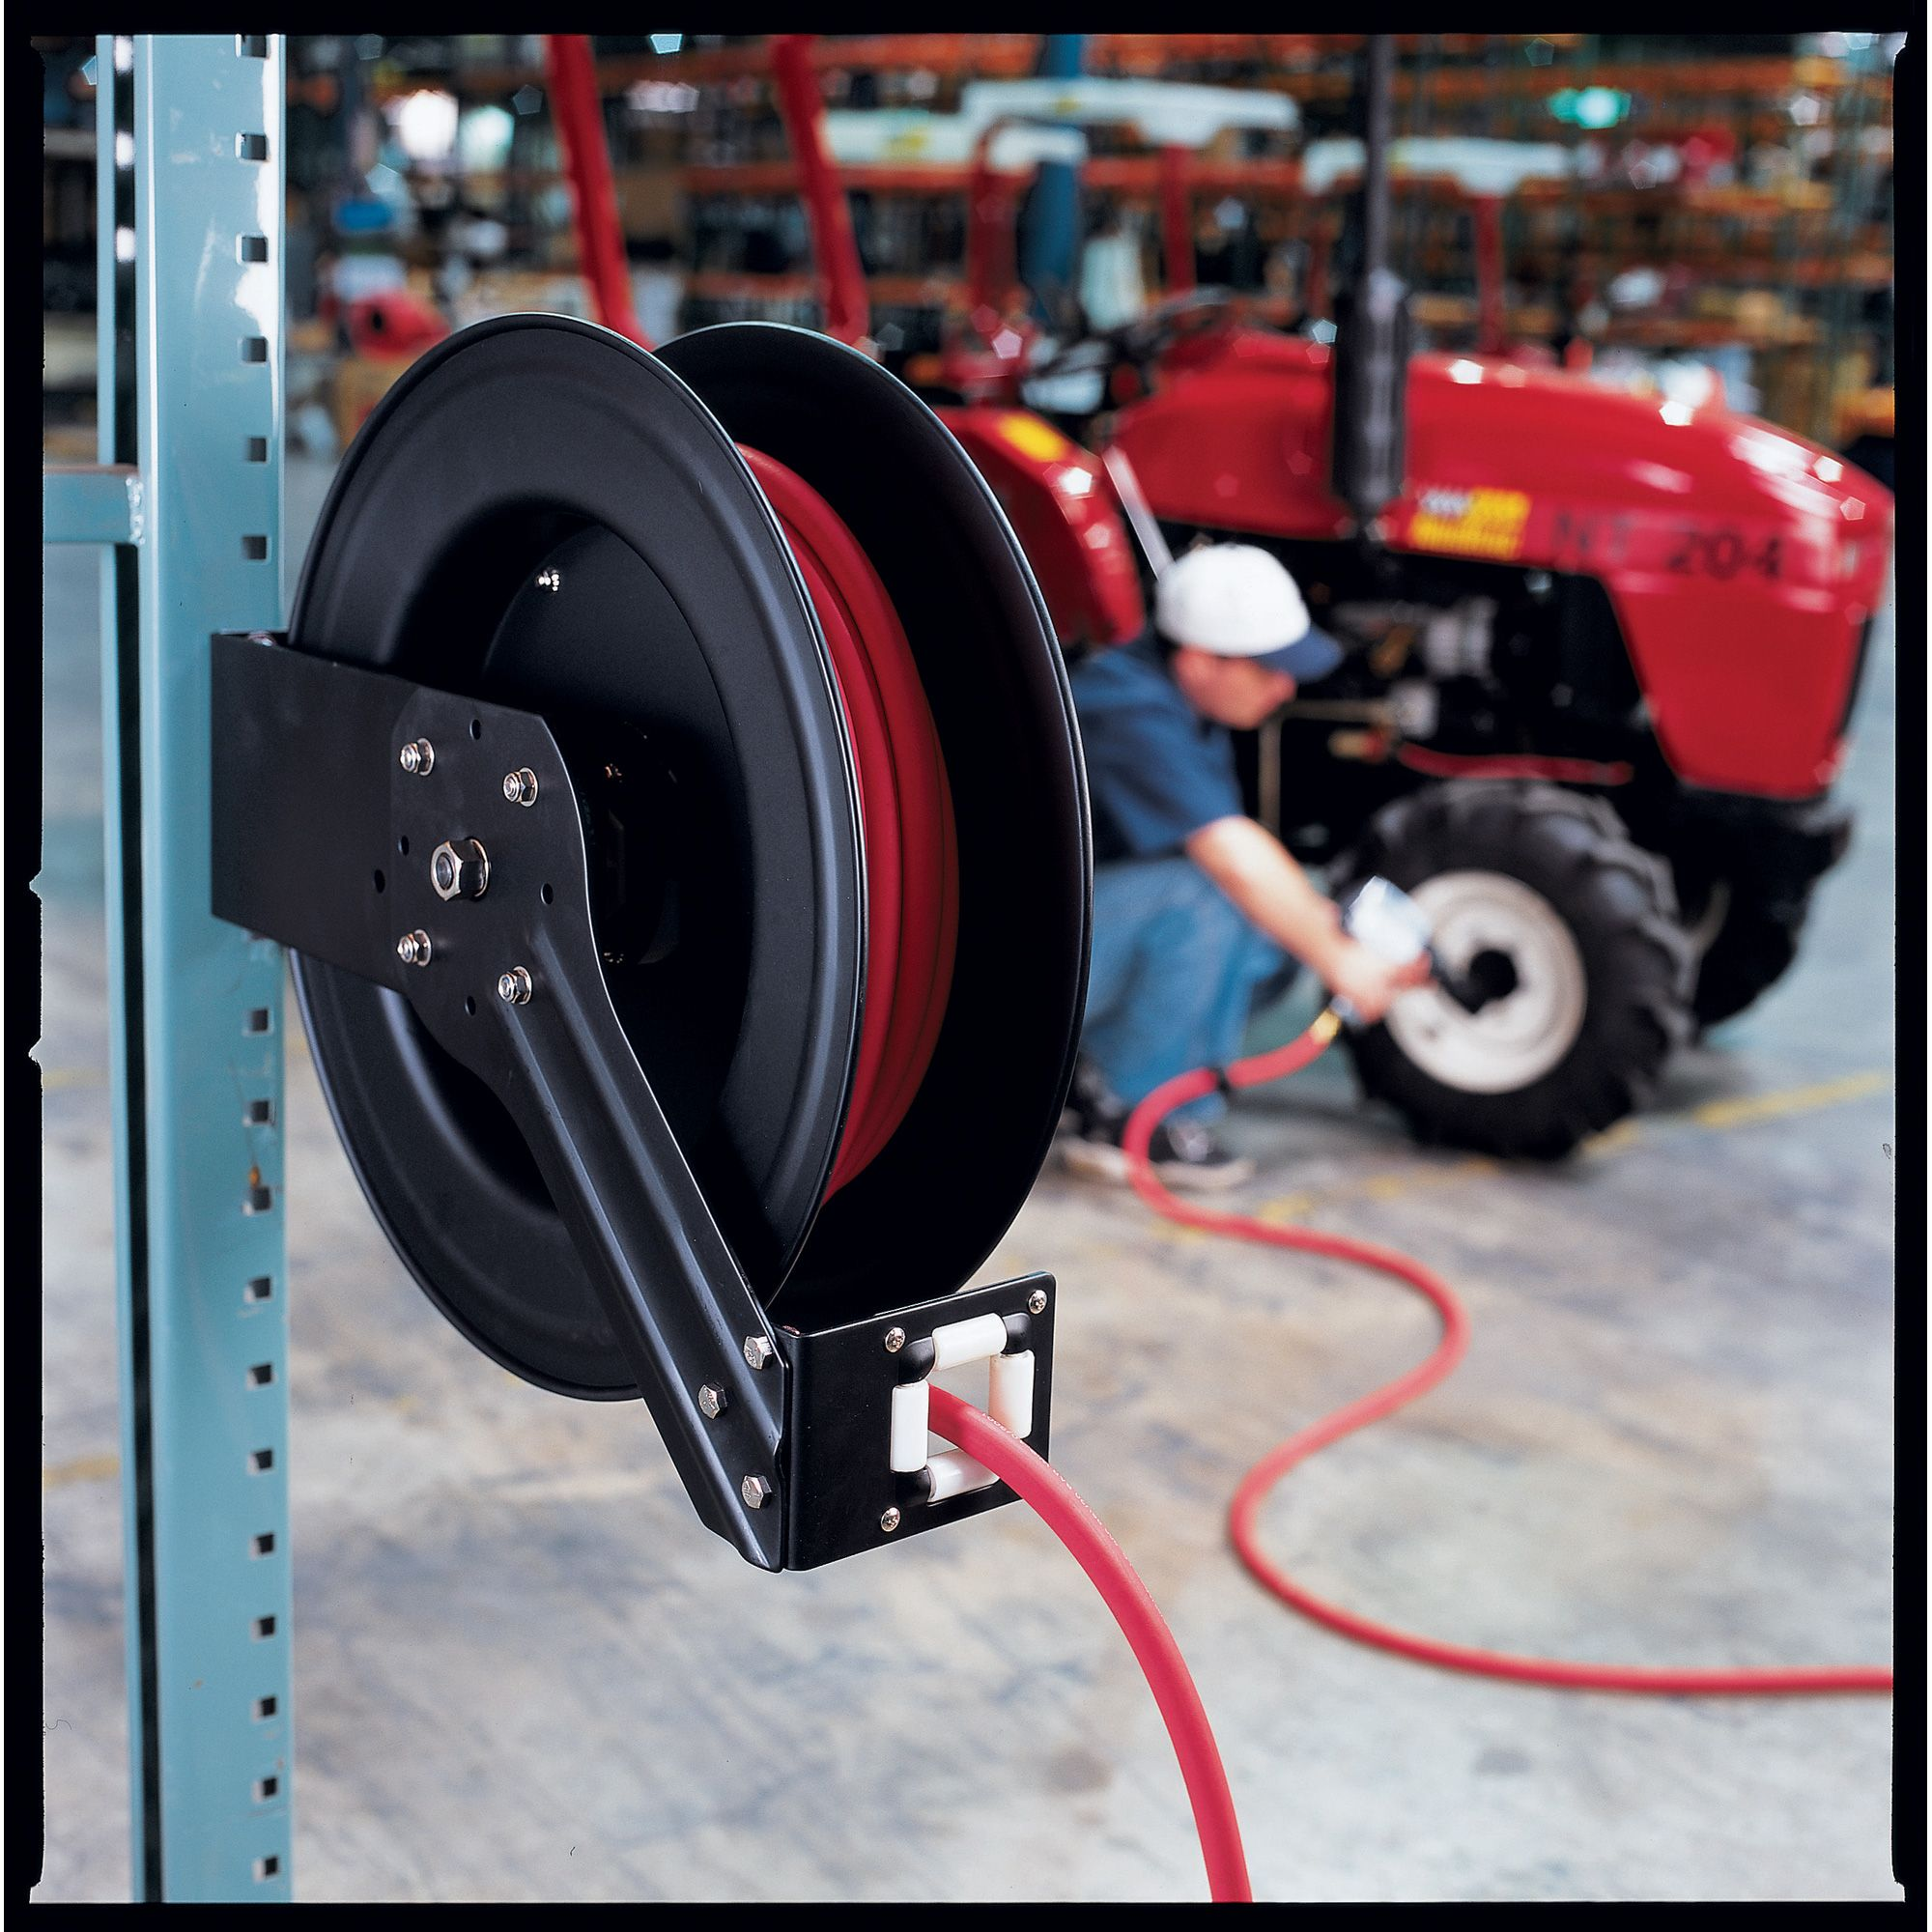 Add flexibility to your air compressor with a smooth